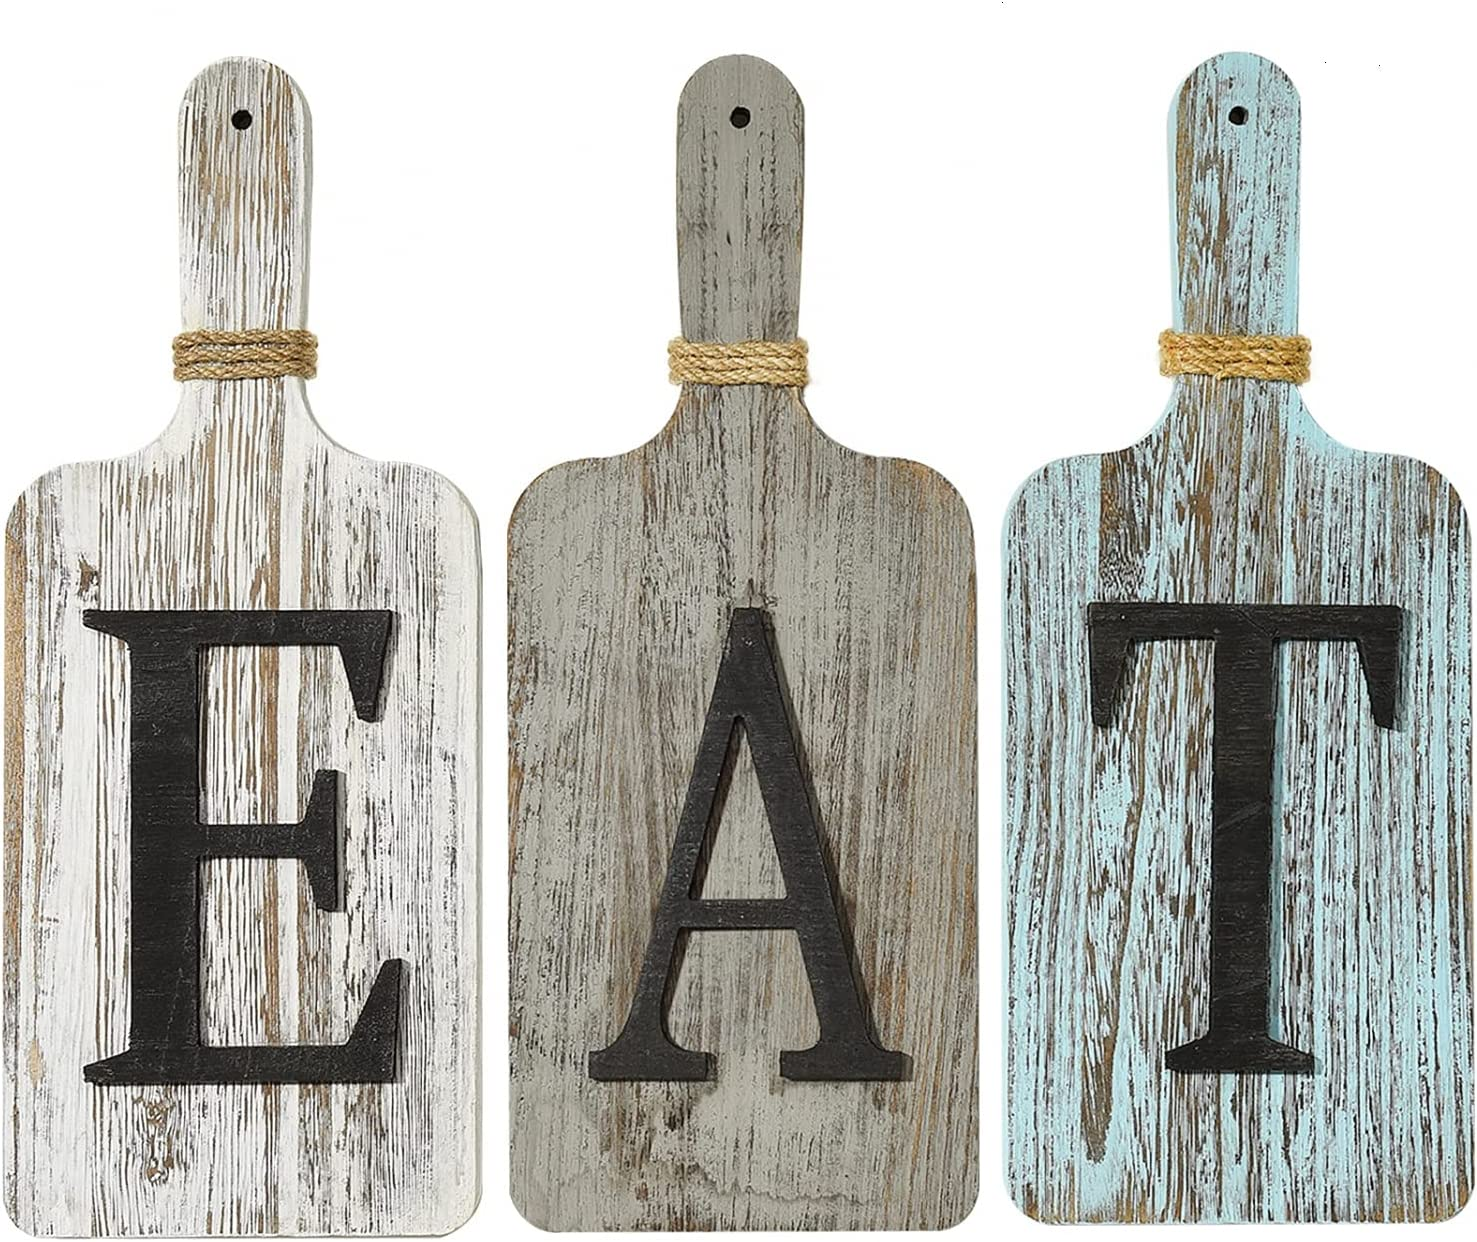 YoleShy Cutting Board EAT Sign Kitchen Signs Wall Decor Farmhouse Wood Rustic Kitchen Decor Wall Country Decor for Family, Home, Dining Room Set of 3